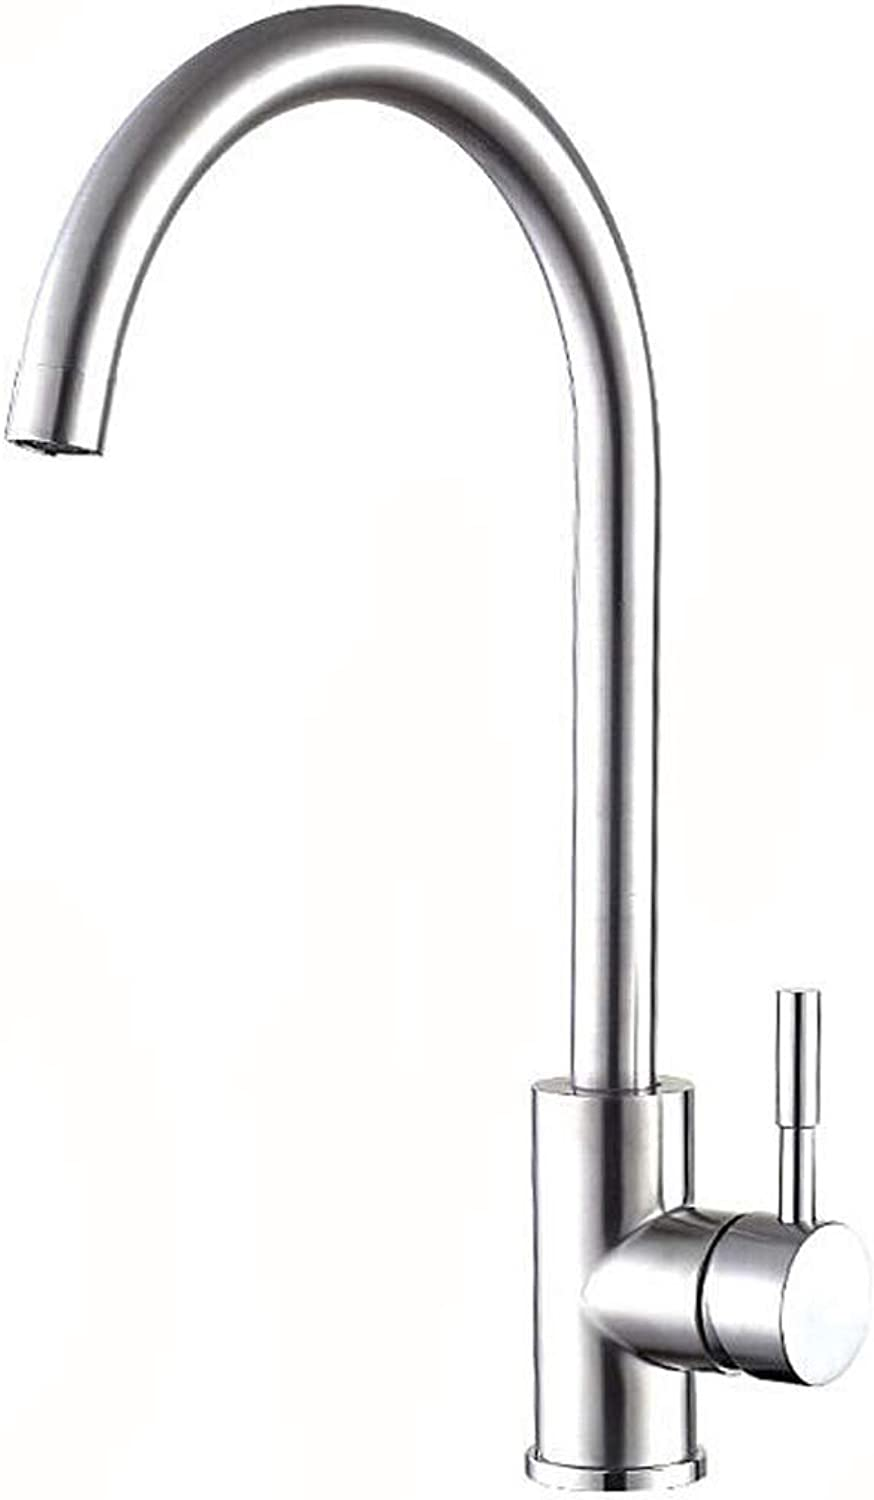 Nosterappou 304 stainless steel hot and cold universal kitchen faucet, sink hot and cold water faucet, redatable sink faucet does not splash